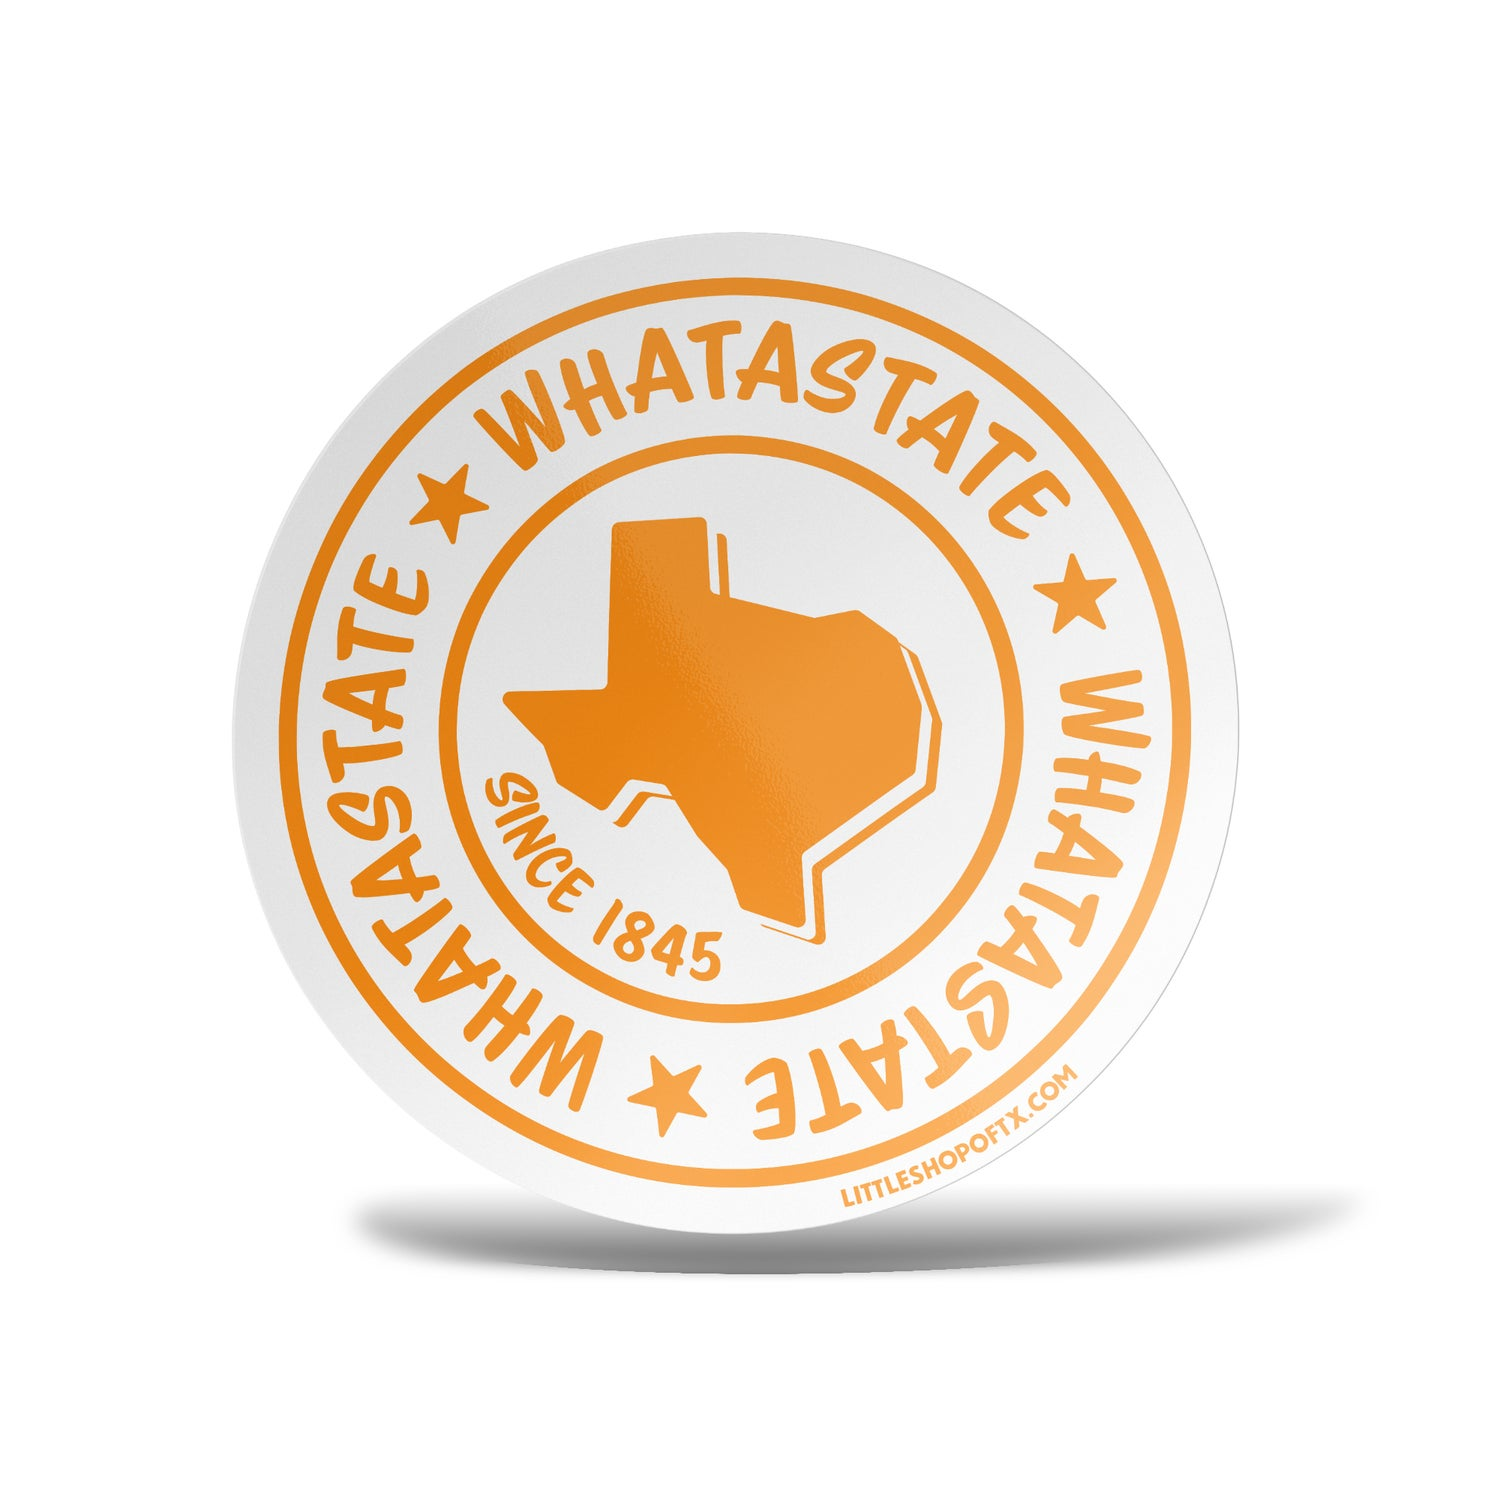 Image of Whatastate Sticker